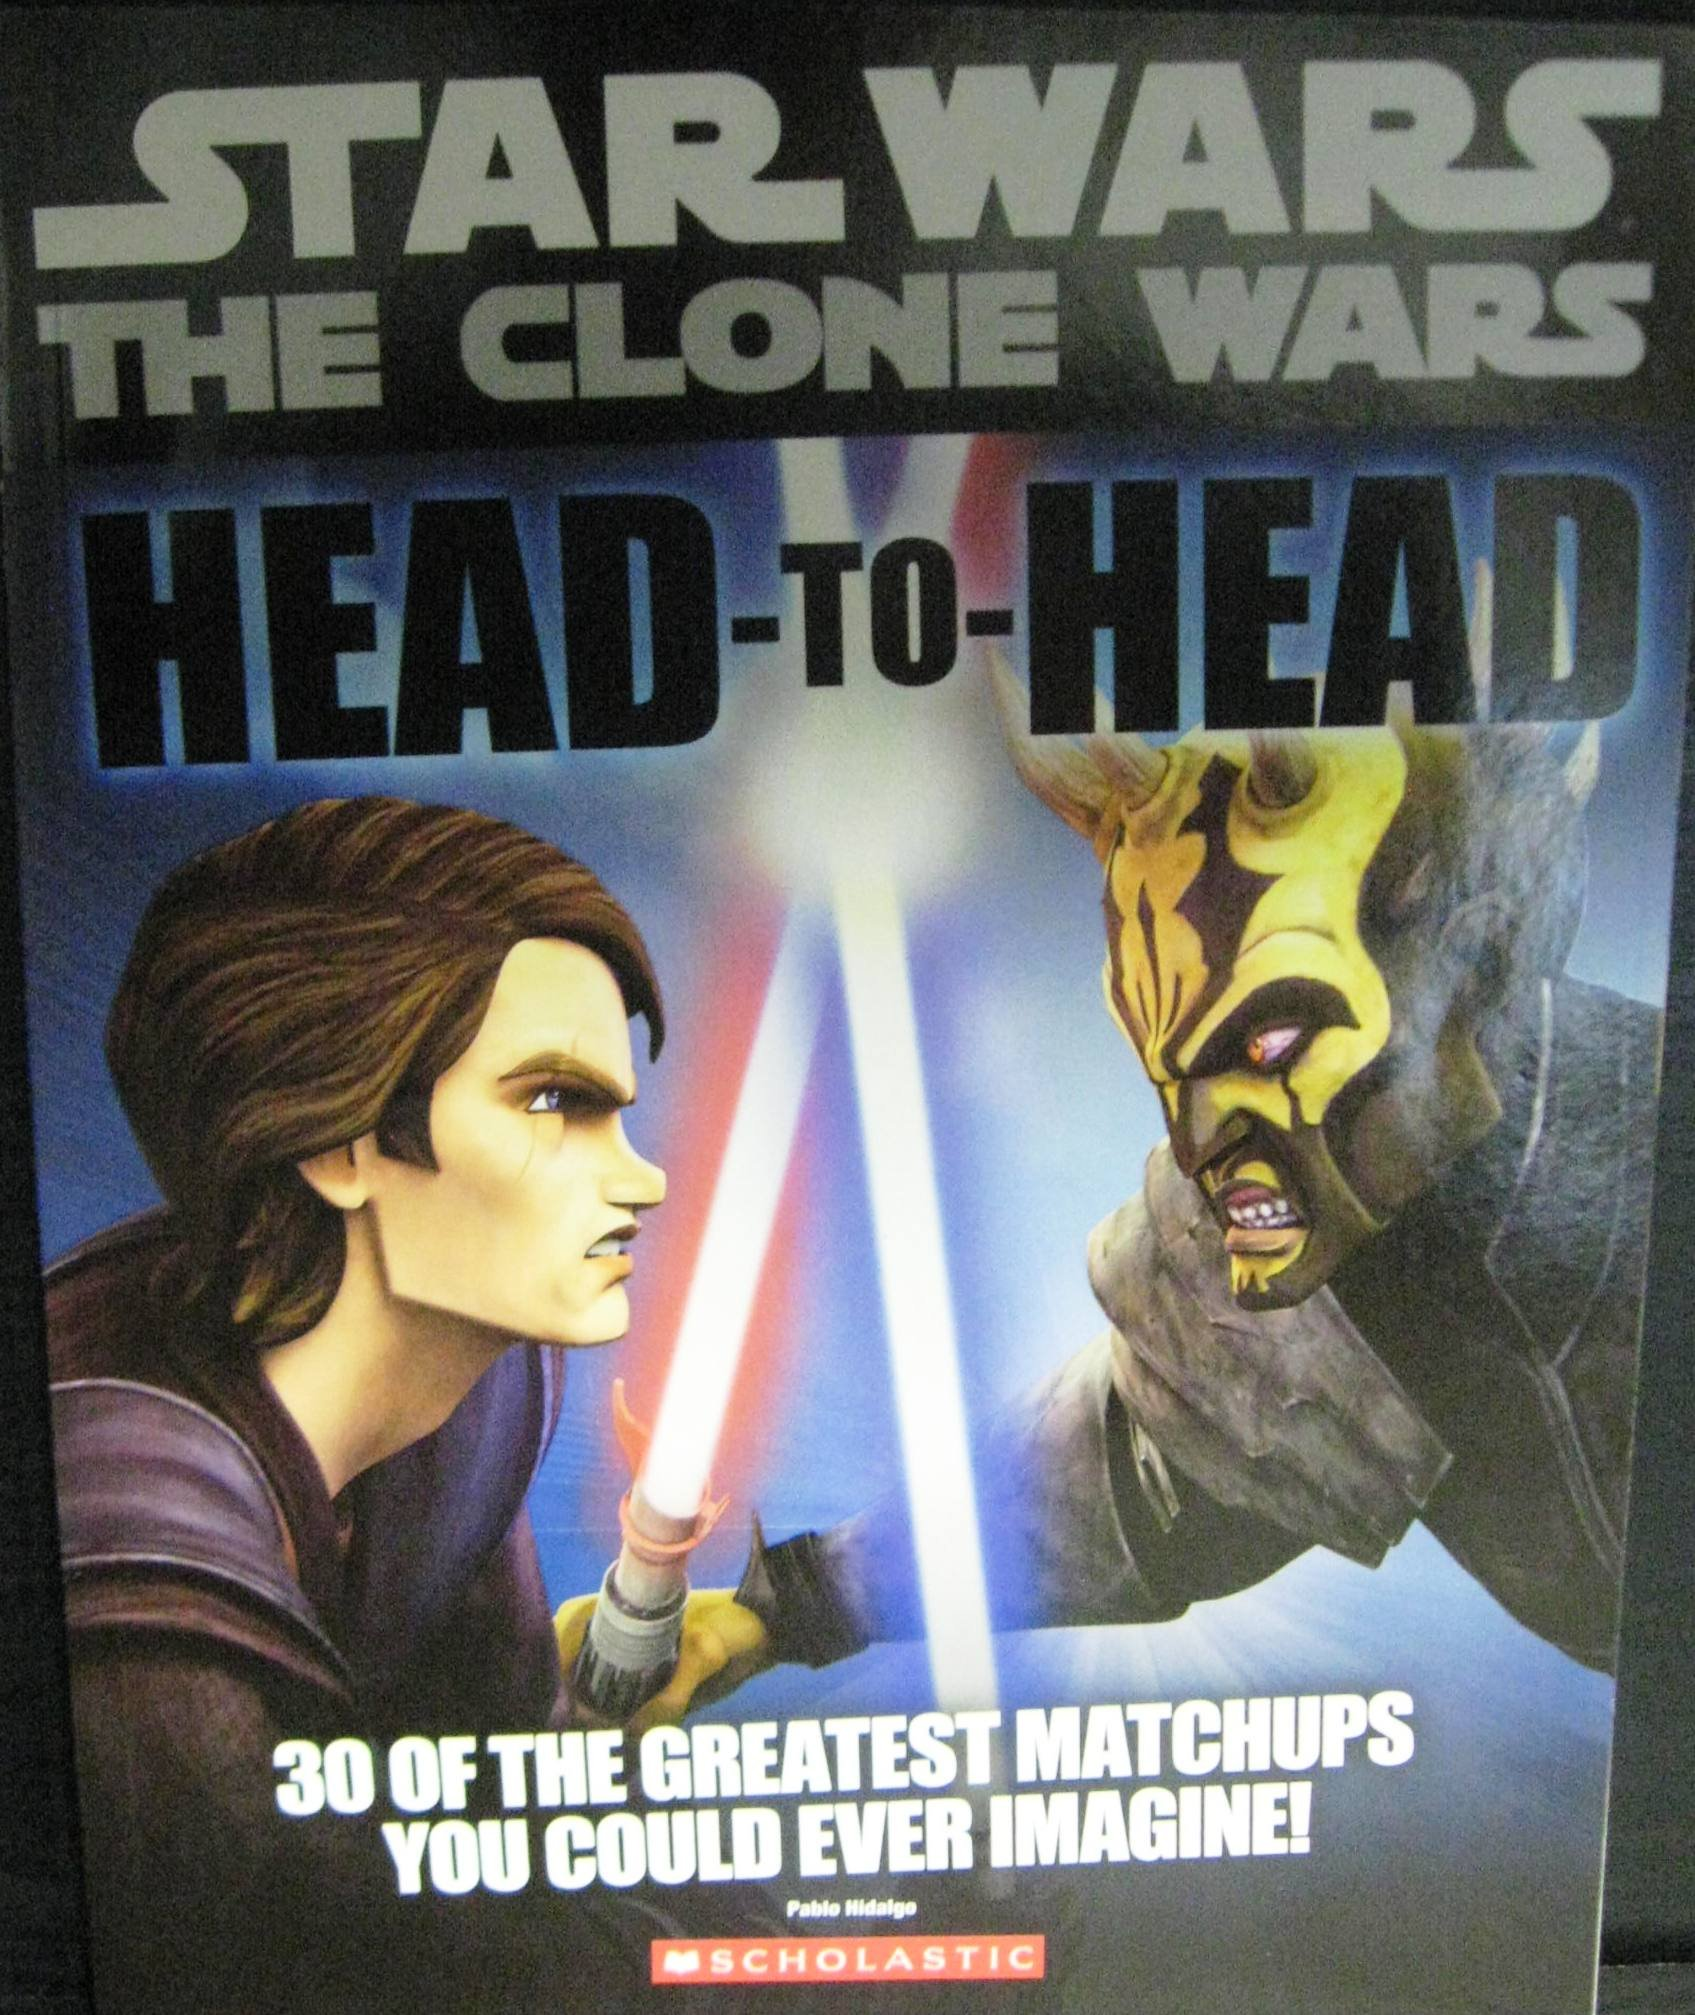 Star Wars The Clone Wars: Head to Head